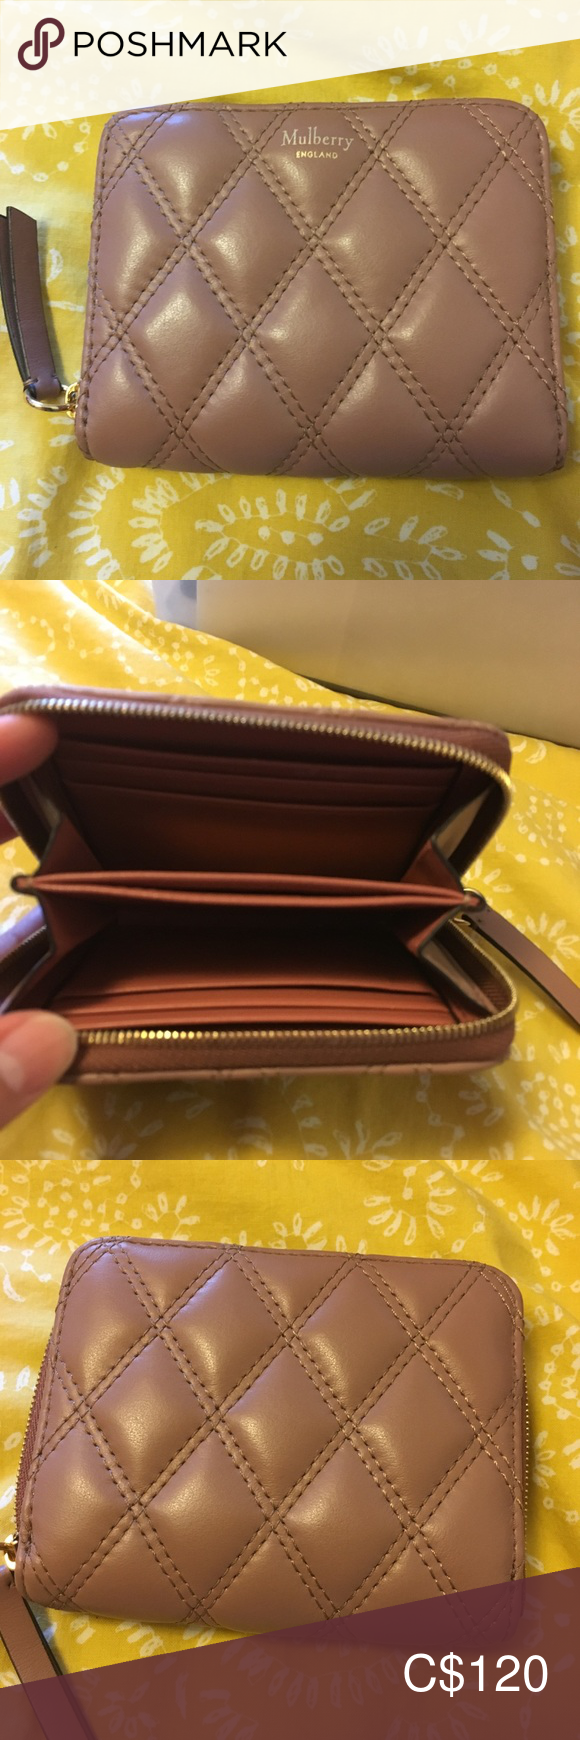 Excellent Brand New Mulberry Wallet #mulberrybag Excellent Brand New Mulberry Wallet Authentic Mulberry Small Zip Around Purse / Wallet.  Height 3½ Width 4¼ Depth ¾  Each side can hold 3 credit cards or ID cards. Mulberry Bags Wallets #mulberrybag